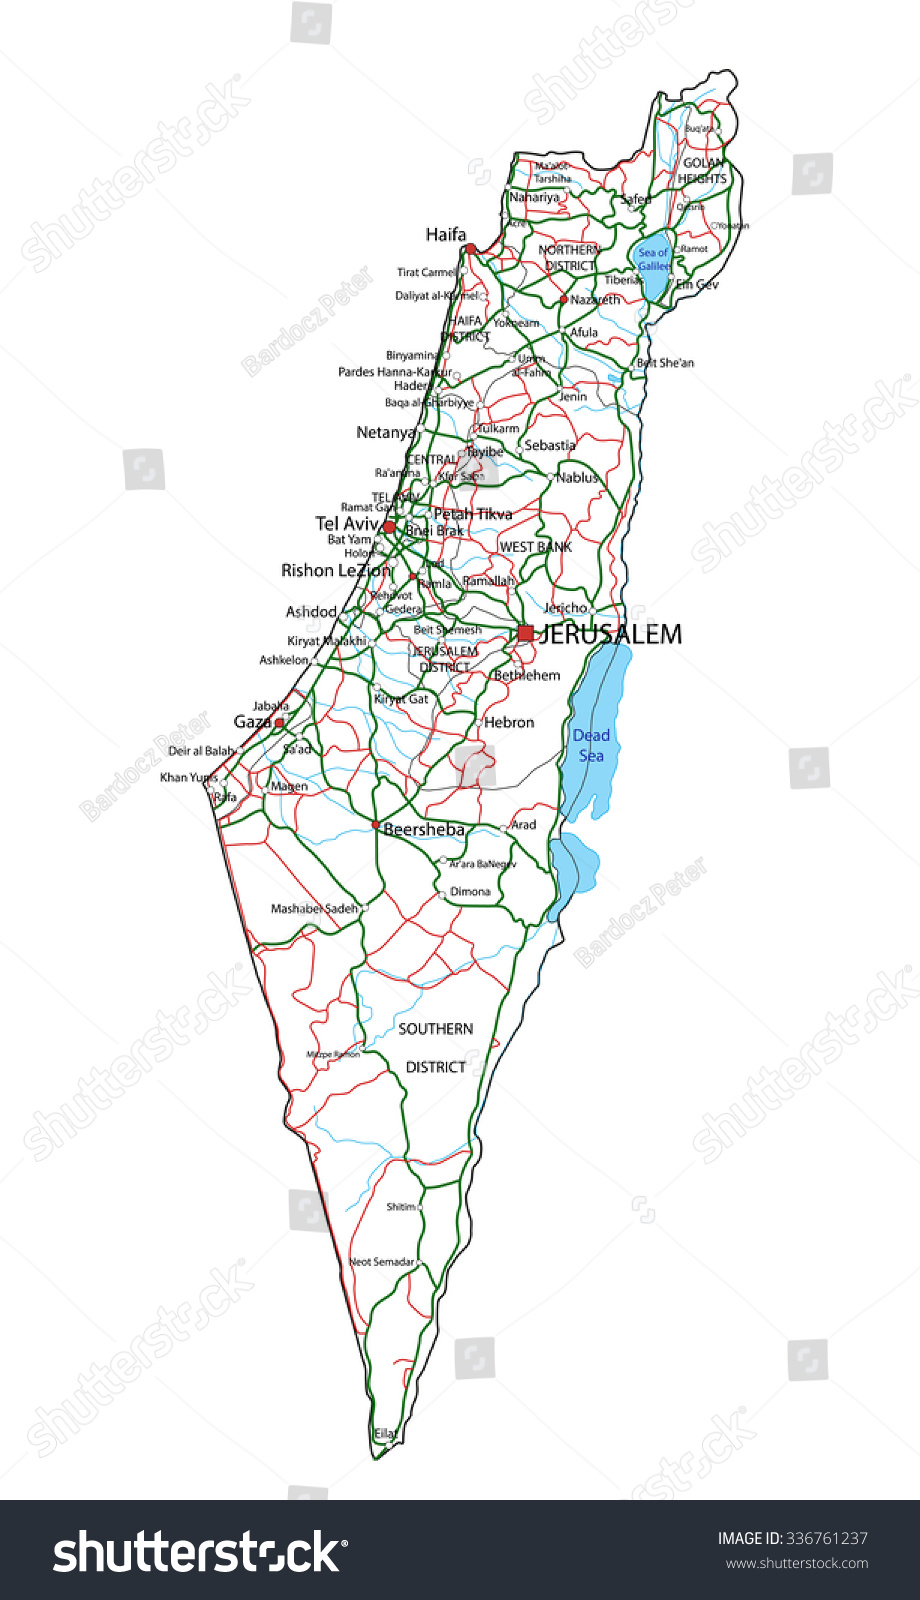 Royaltyfree Israel road and highway map Vector 336761237 Stock